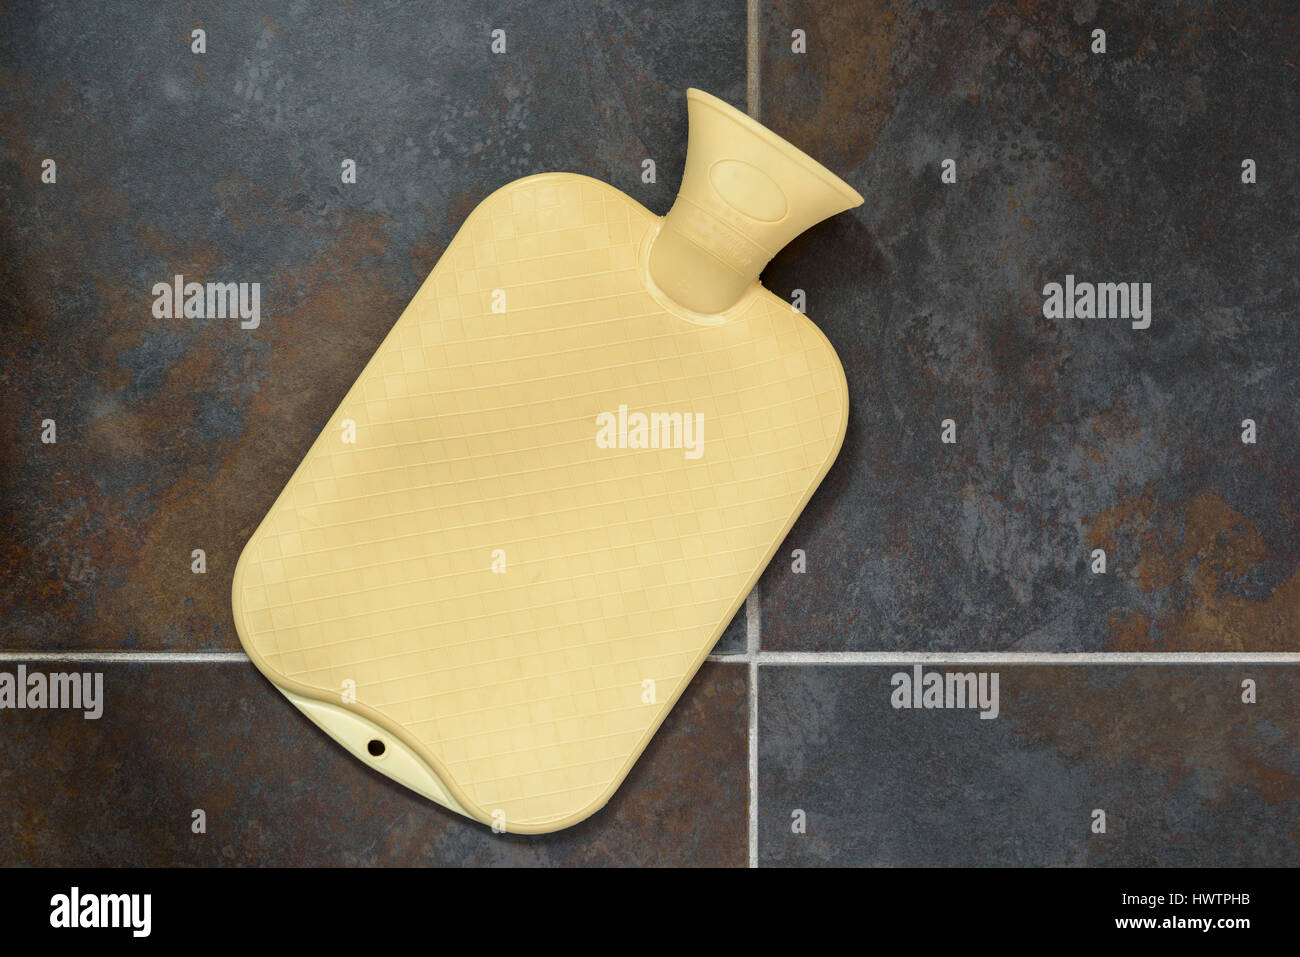 Hot water bottle on a tiled bathroom floor. - Stock Image